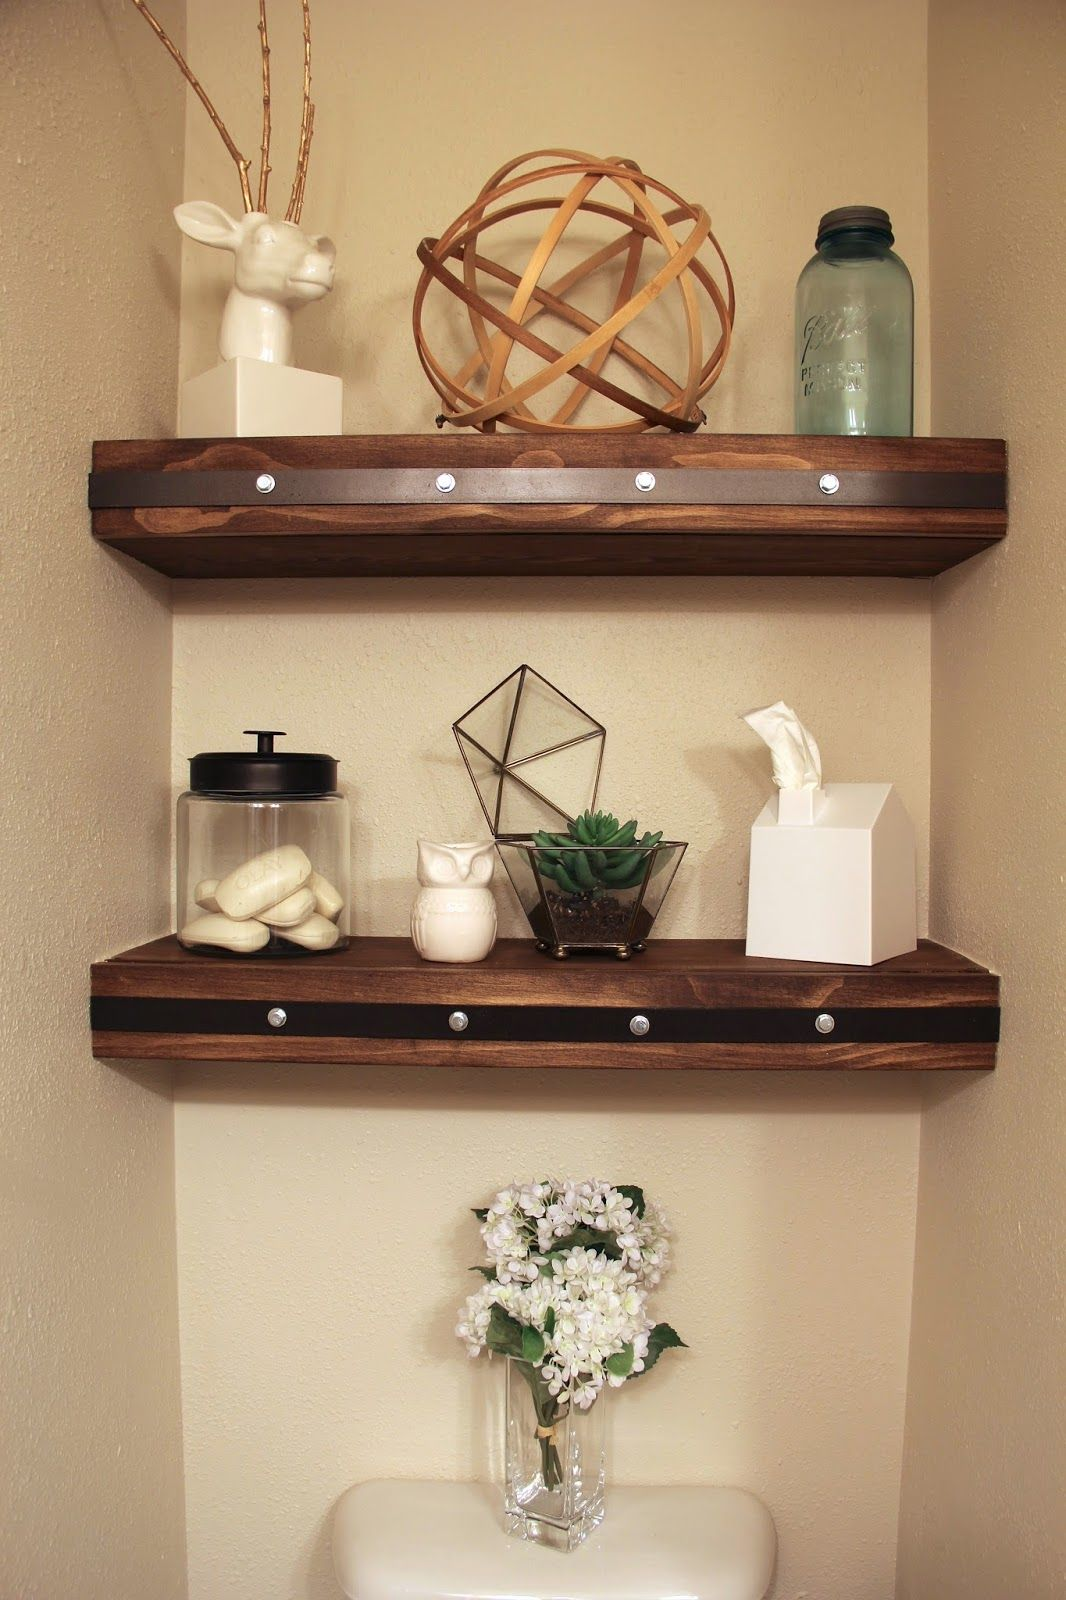 Diy Floating Shelves With Faux Rivets Metal Floating Shelves Bathroom Shelf Decor Floating Shelves